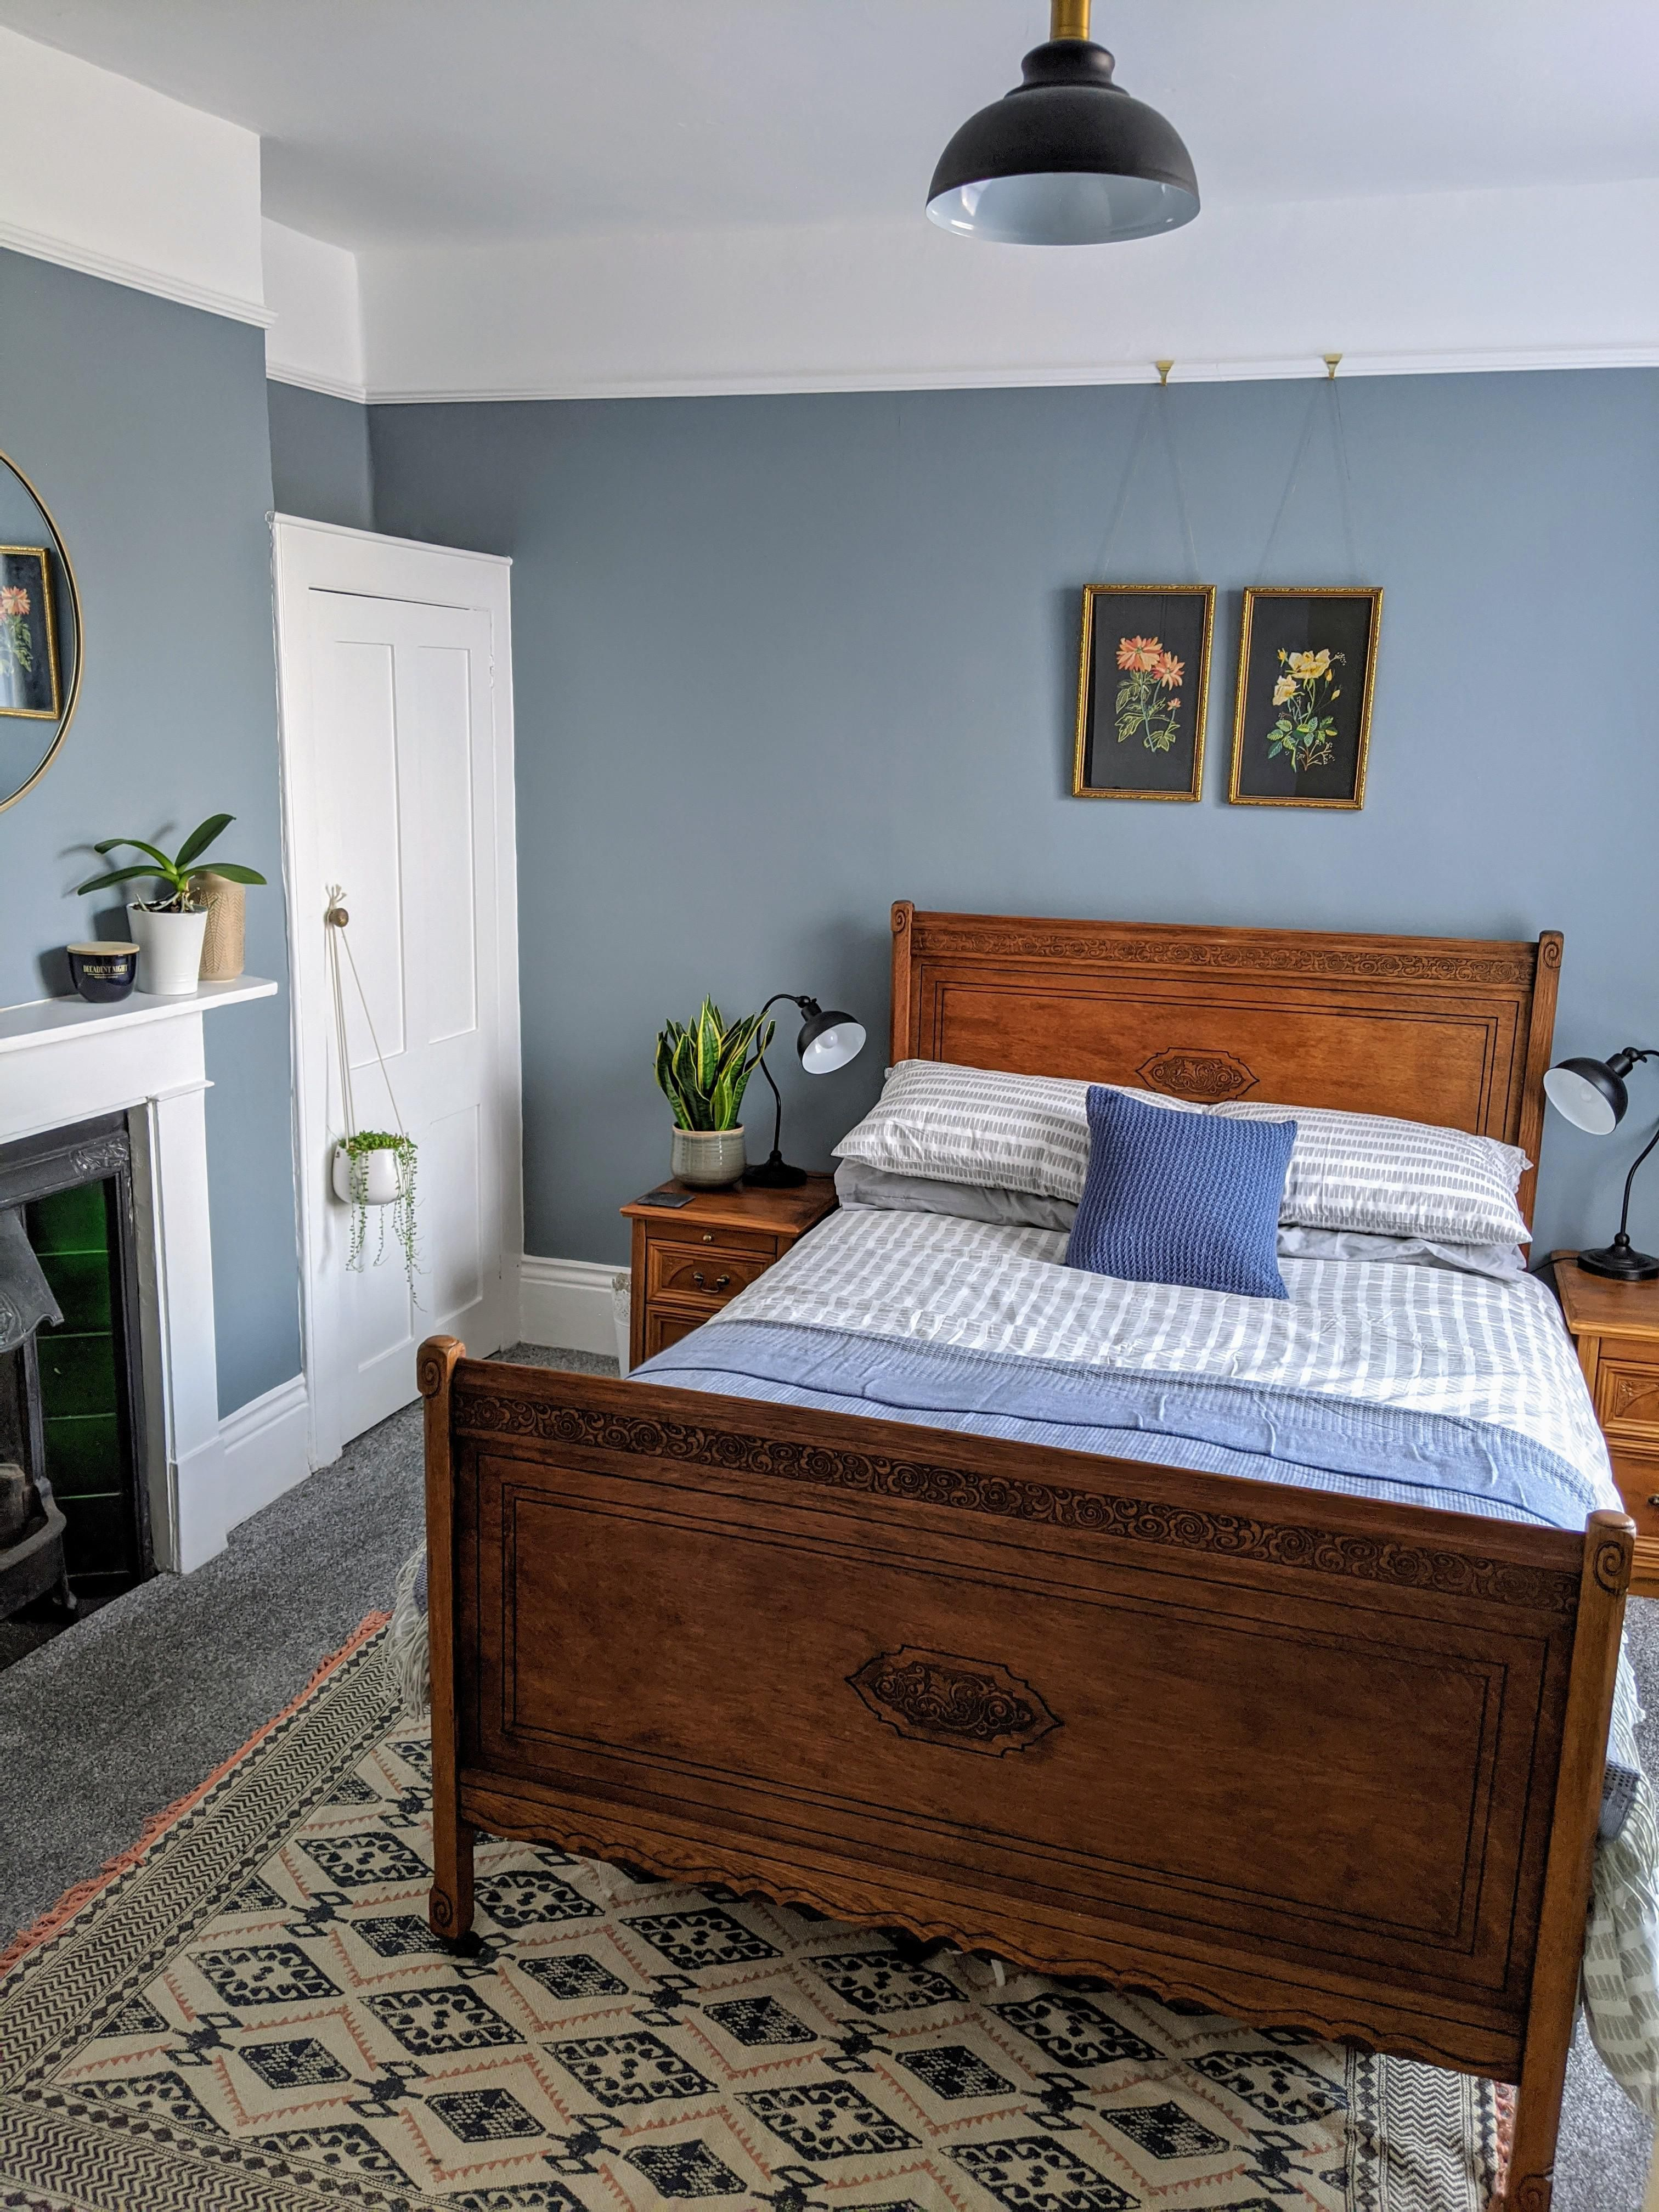 Newly Decorated Guest Bedroom In Our Victorian Terrace South Coast Uk Victorian Terrace Interior Victorian House Interiors Modern Victorian Bedroom Guest bedroom ideas uk